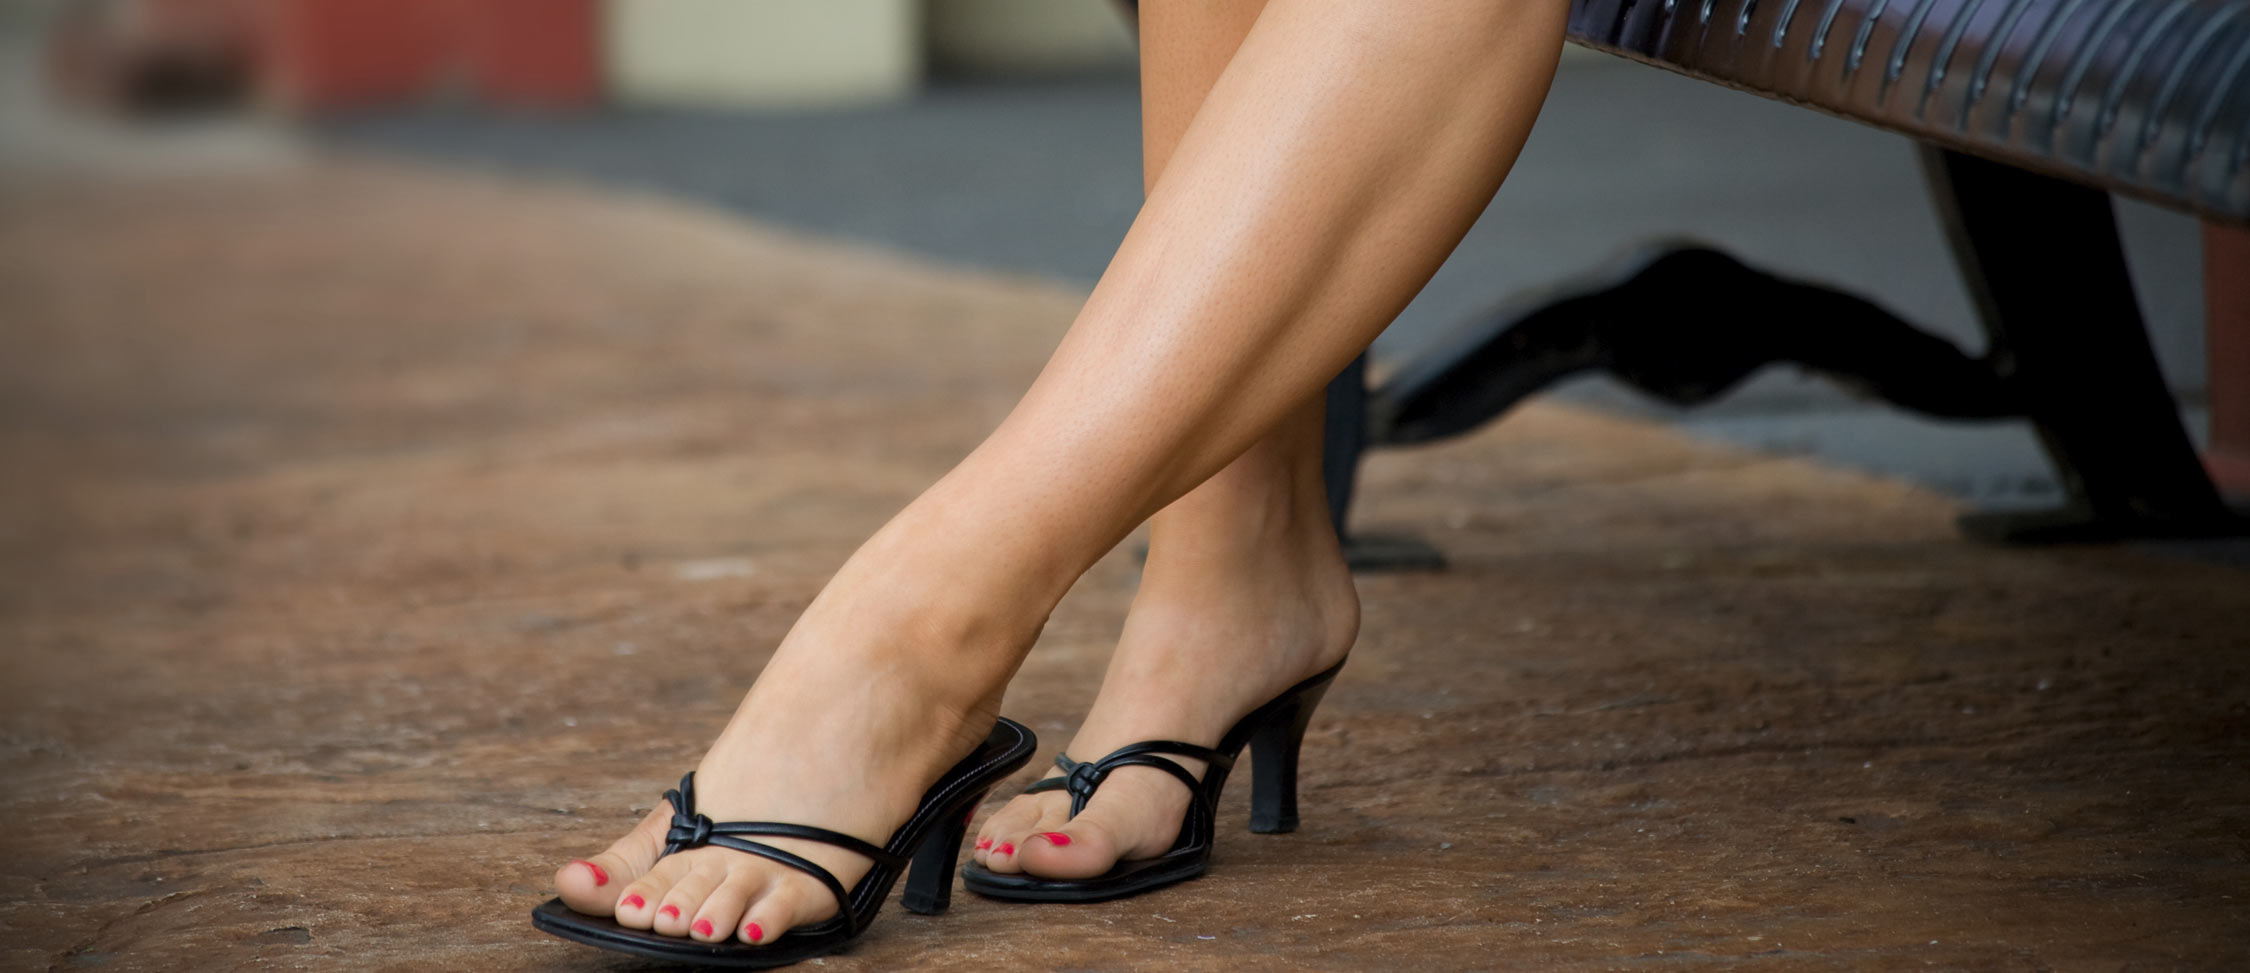 St. Louis Vein Experts - Foam Sclerotherapy